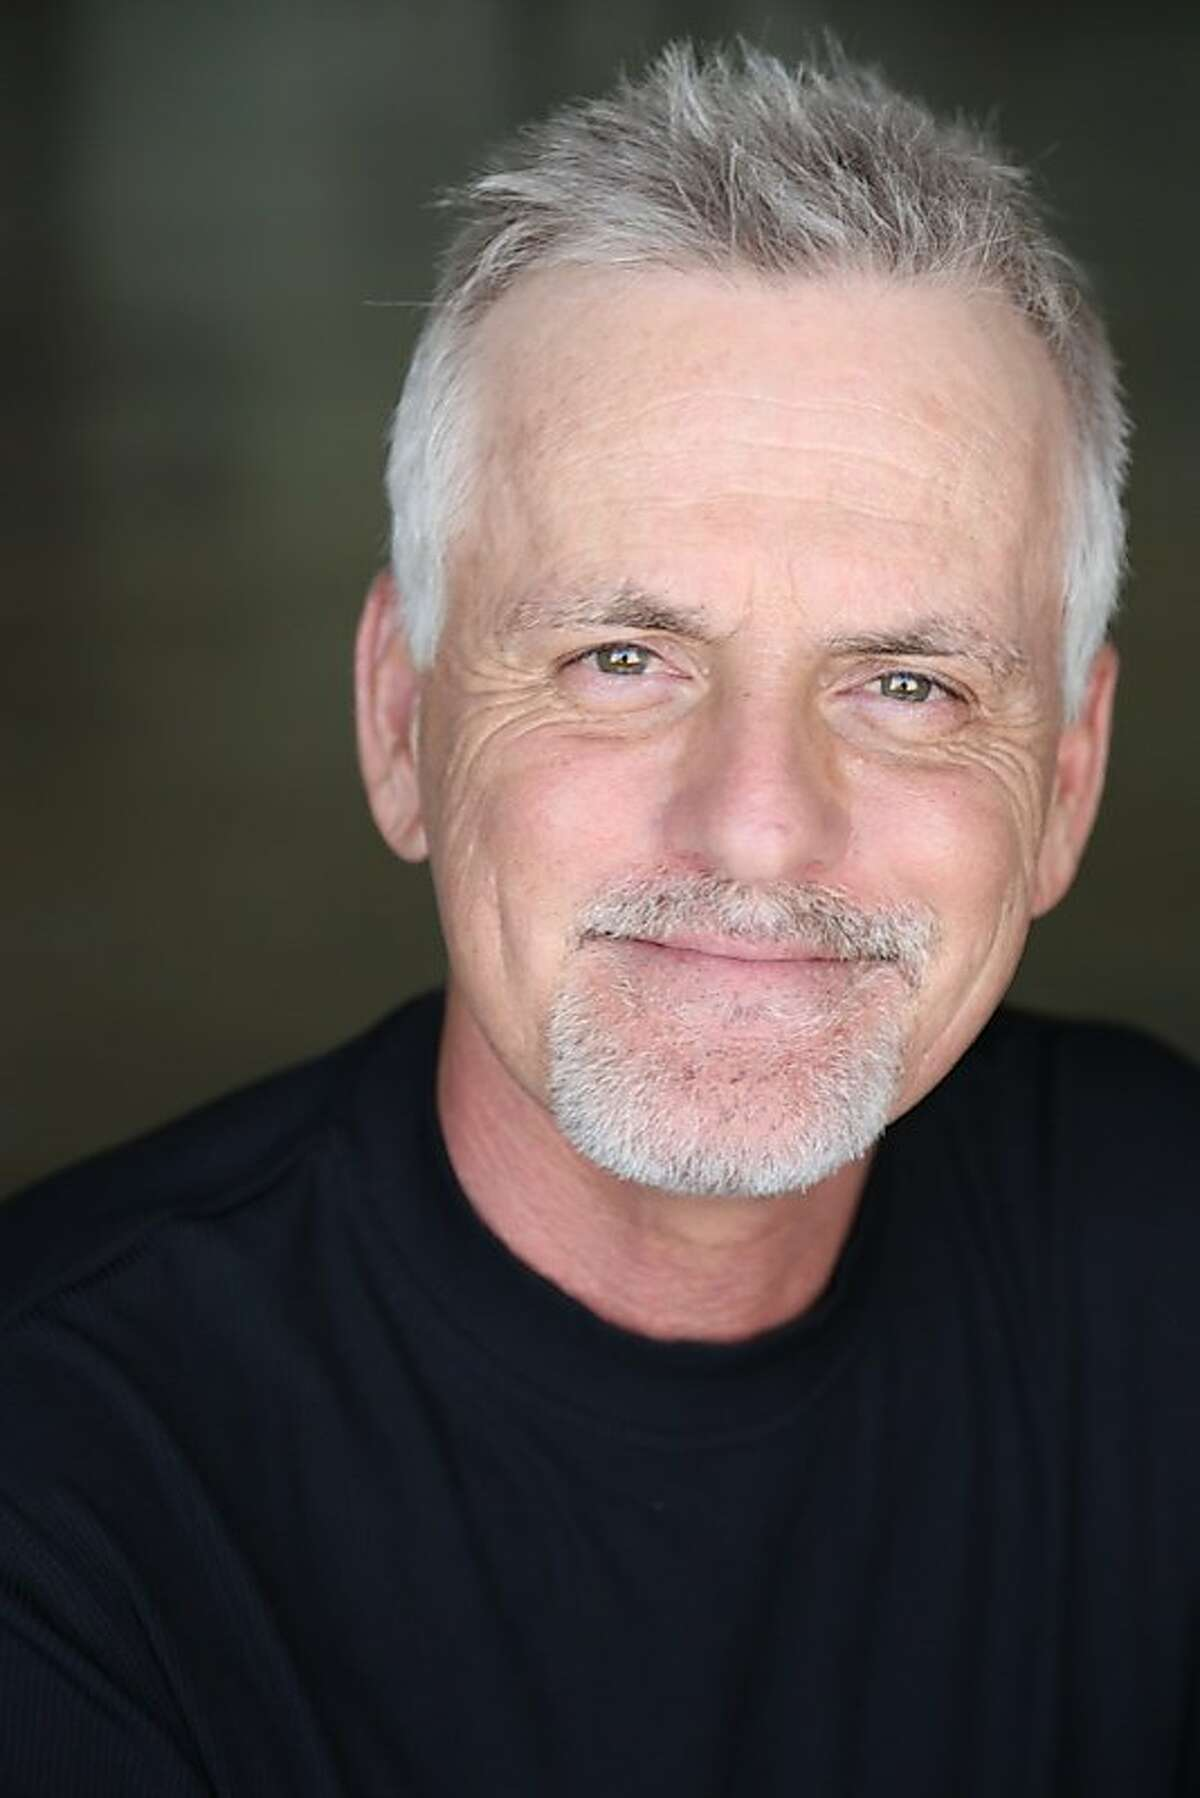 """Rob Paulsen is the voice of Pinky from ?""""Pinky and the Brain,?"""" Yakko from ?""""Animaniacs?"""" as well as both Raphael and Donatello from ?""""Teenage Ninja Mutant Turtles."""" He is on national tour with ?""""Animaniacs in Concert?""""."""